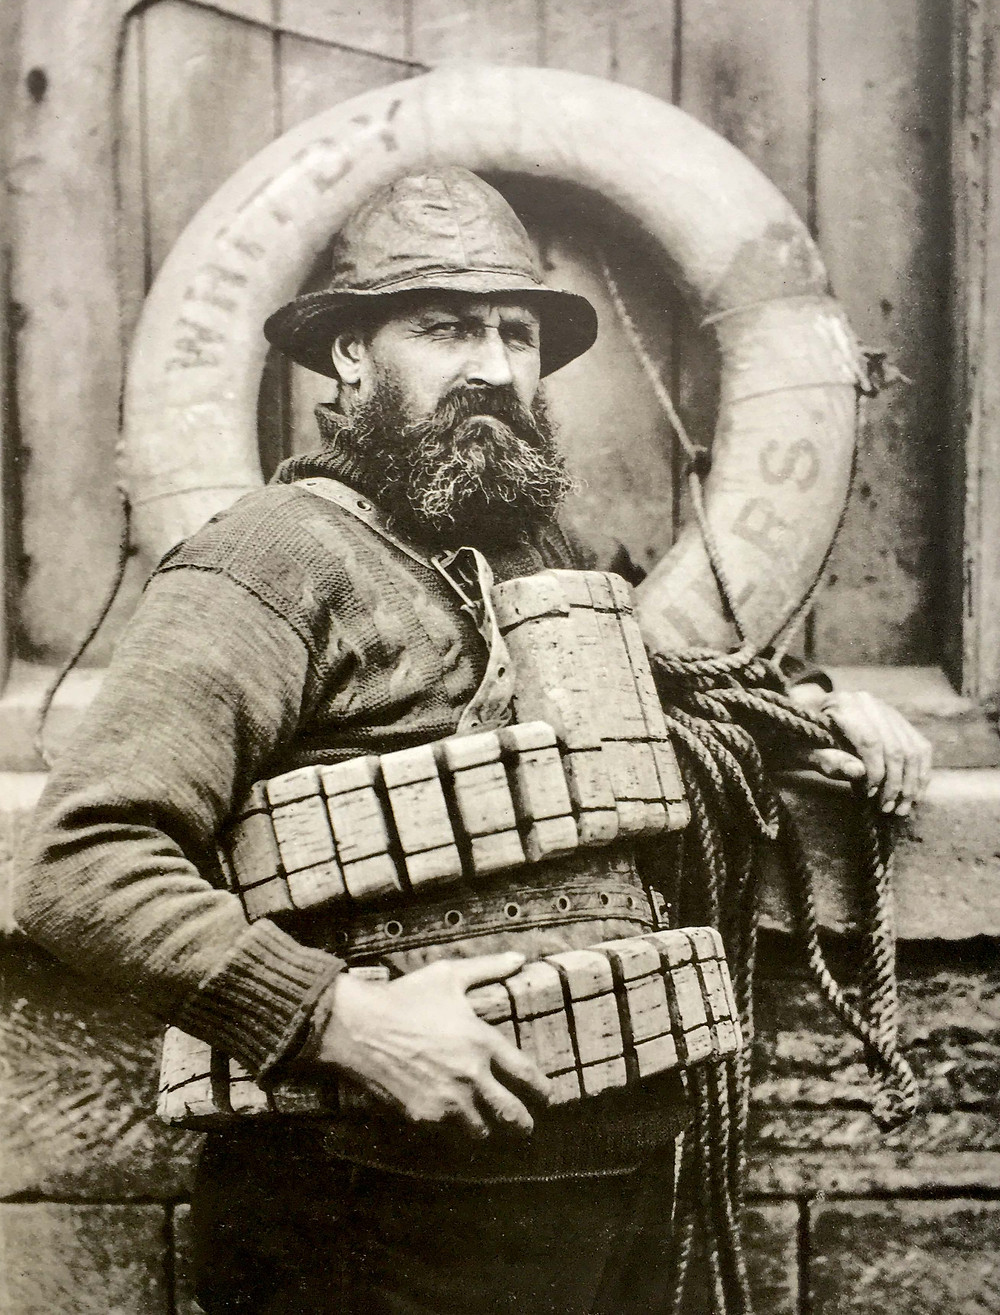 Harry Freeman, sole survivor of the Whitby Lifeboat disaster, 1861